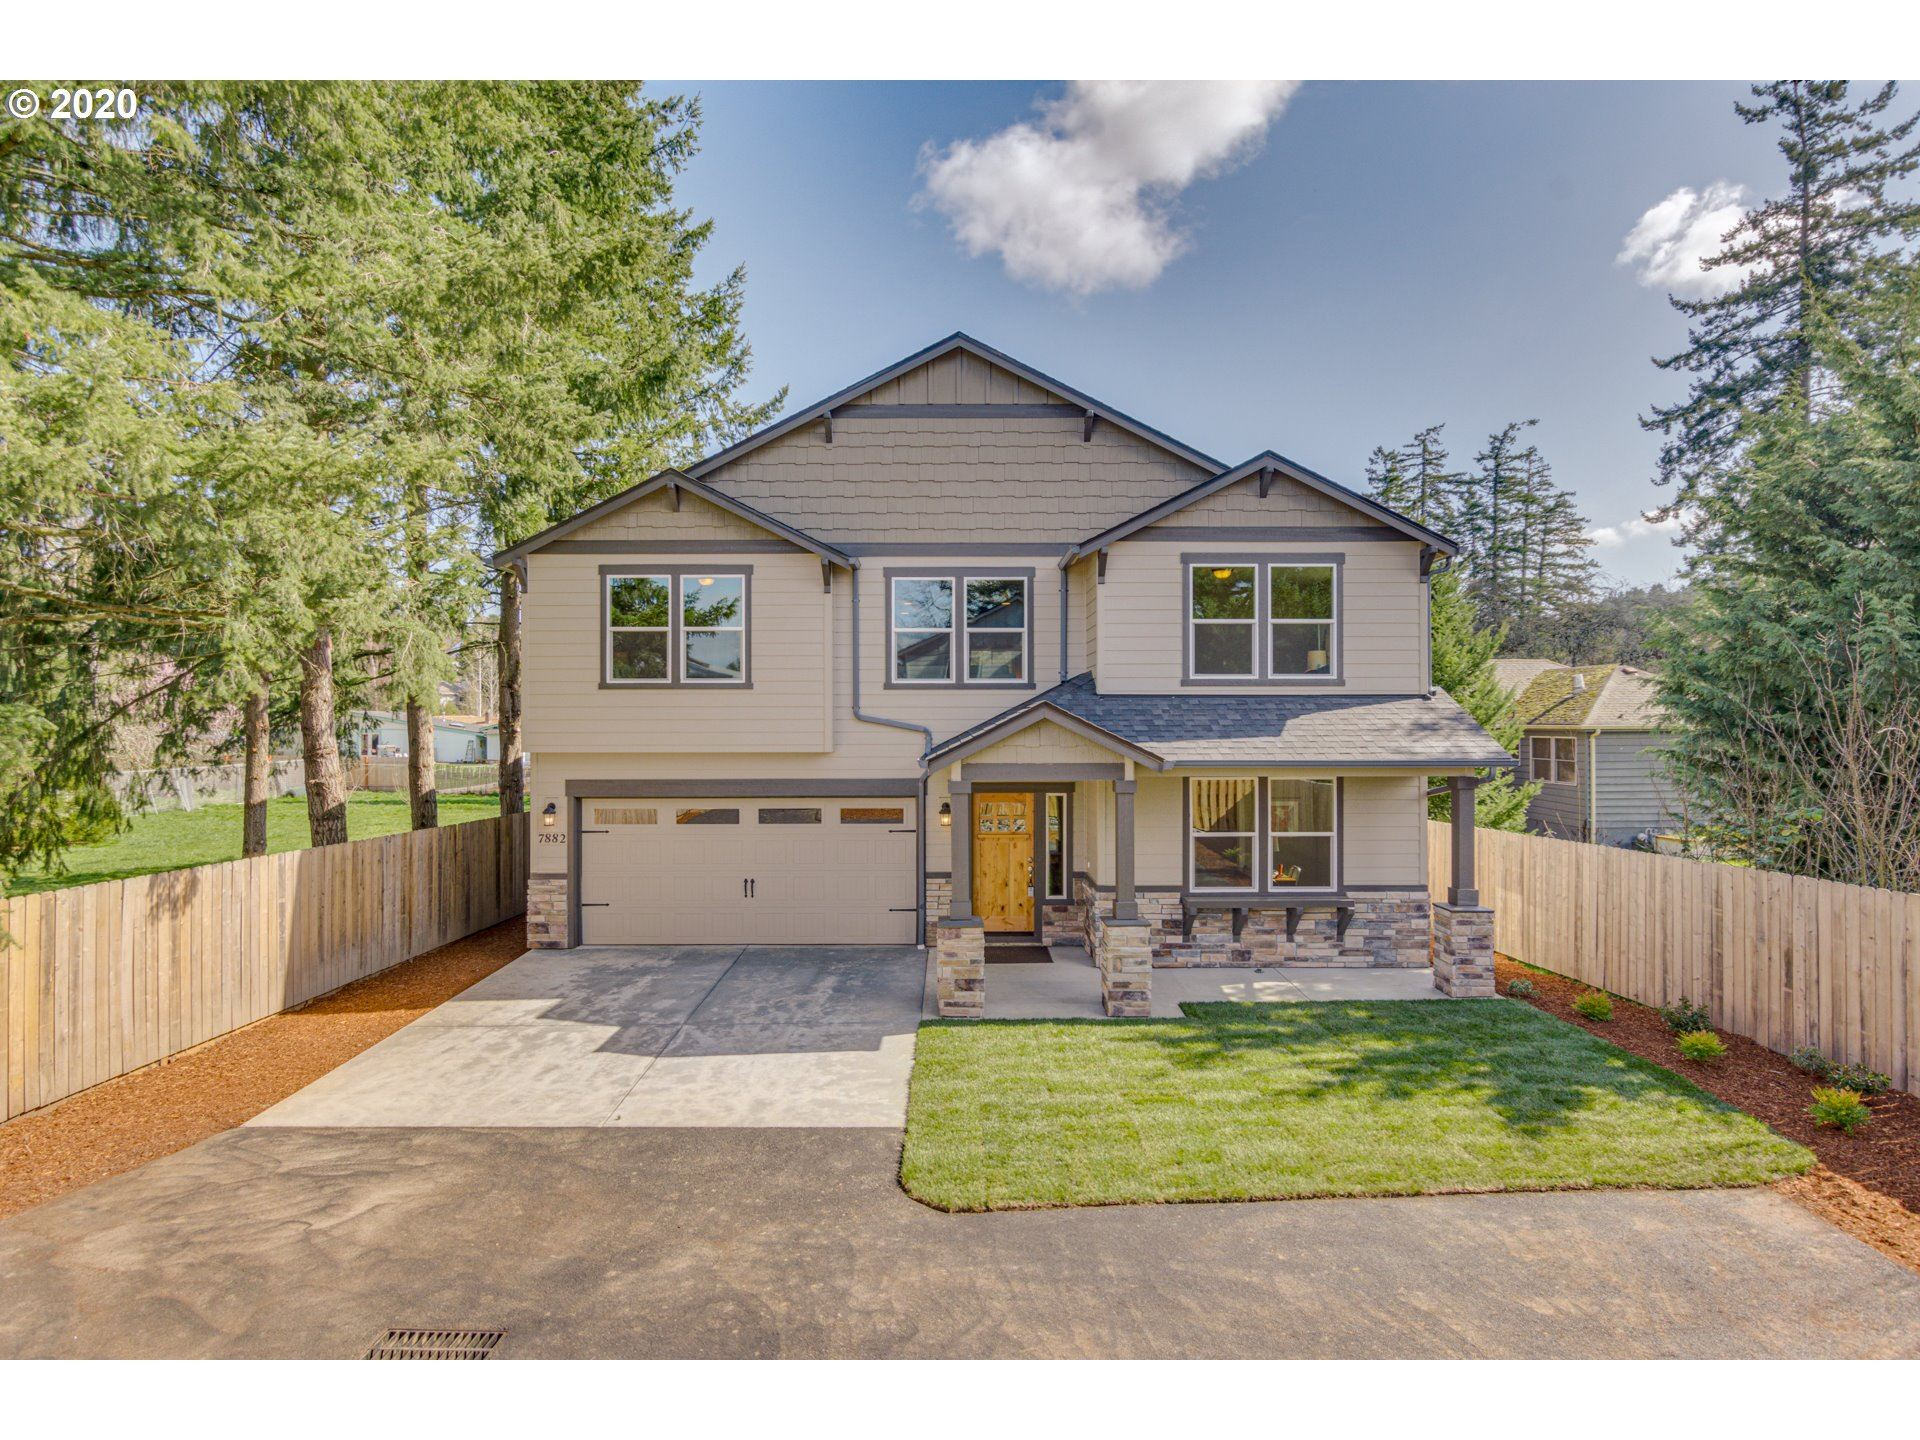 7882 SW 67TH AVE, Portland, OR 97223 - MLS#: 20284857